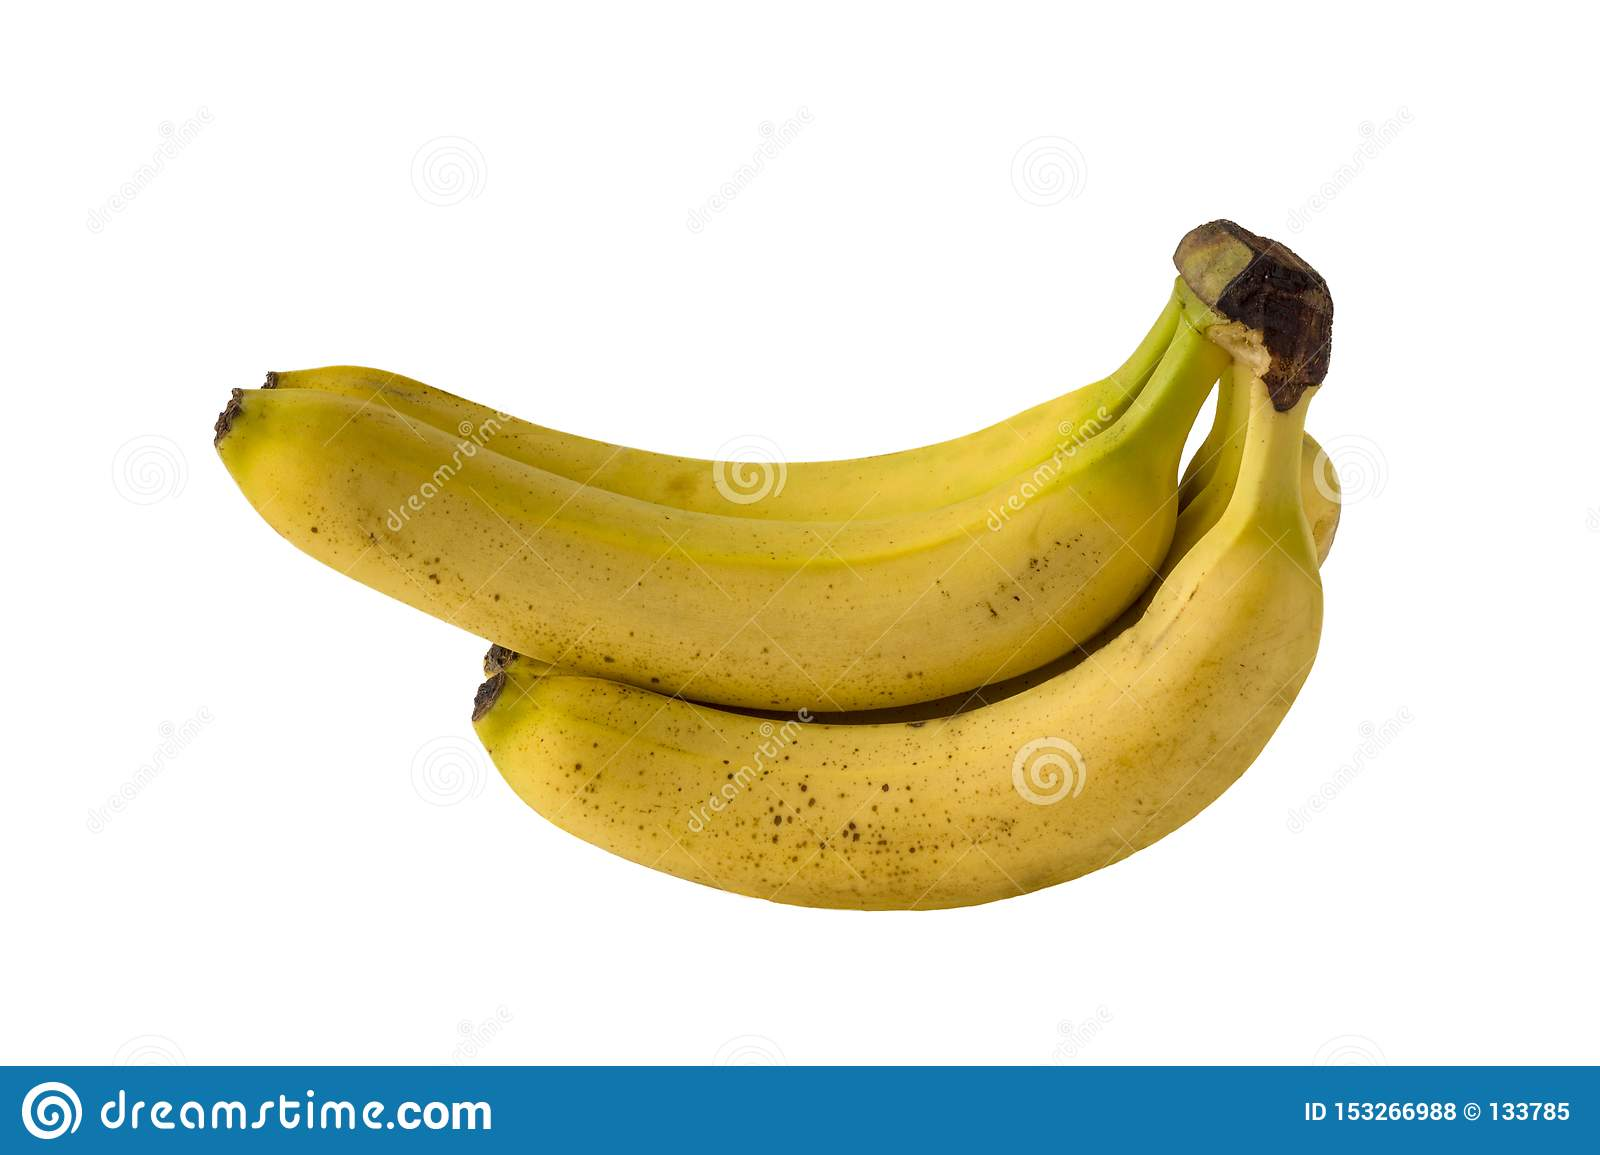 Isolated bunch of bright yellow overripe bananas on a white background